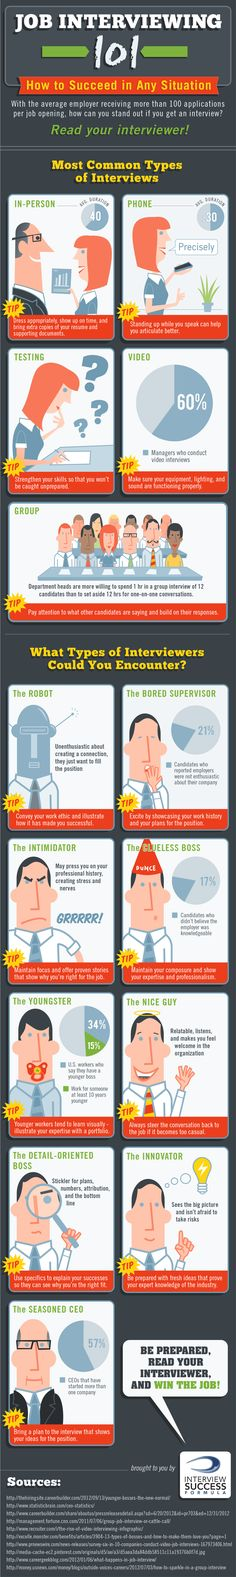 Job Interviewing 101 Infographic